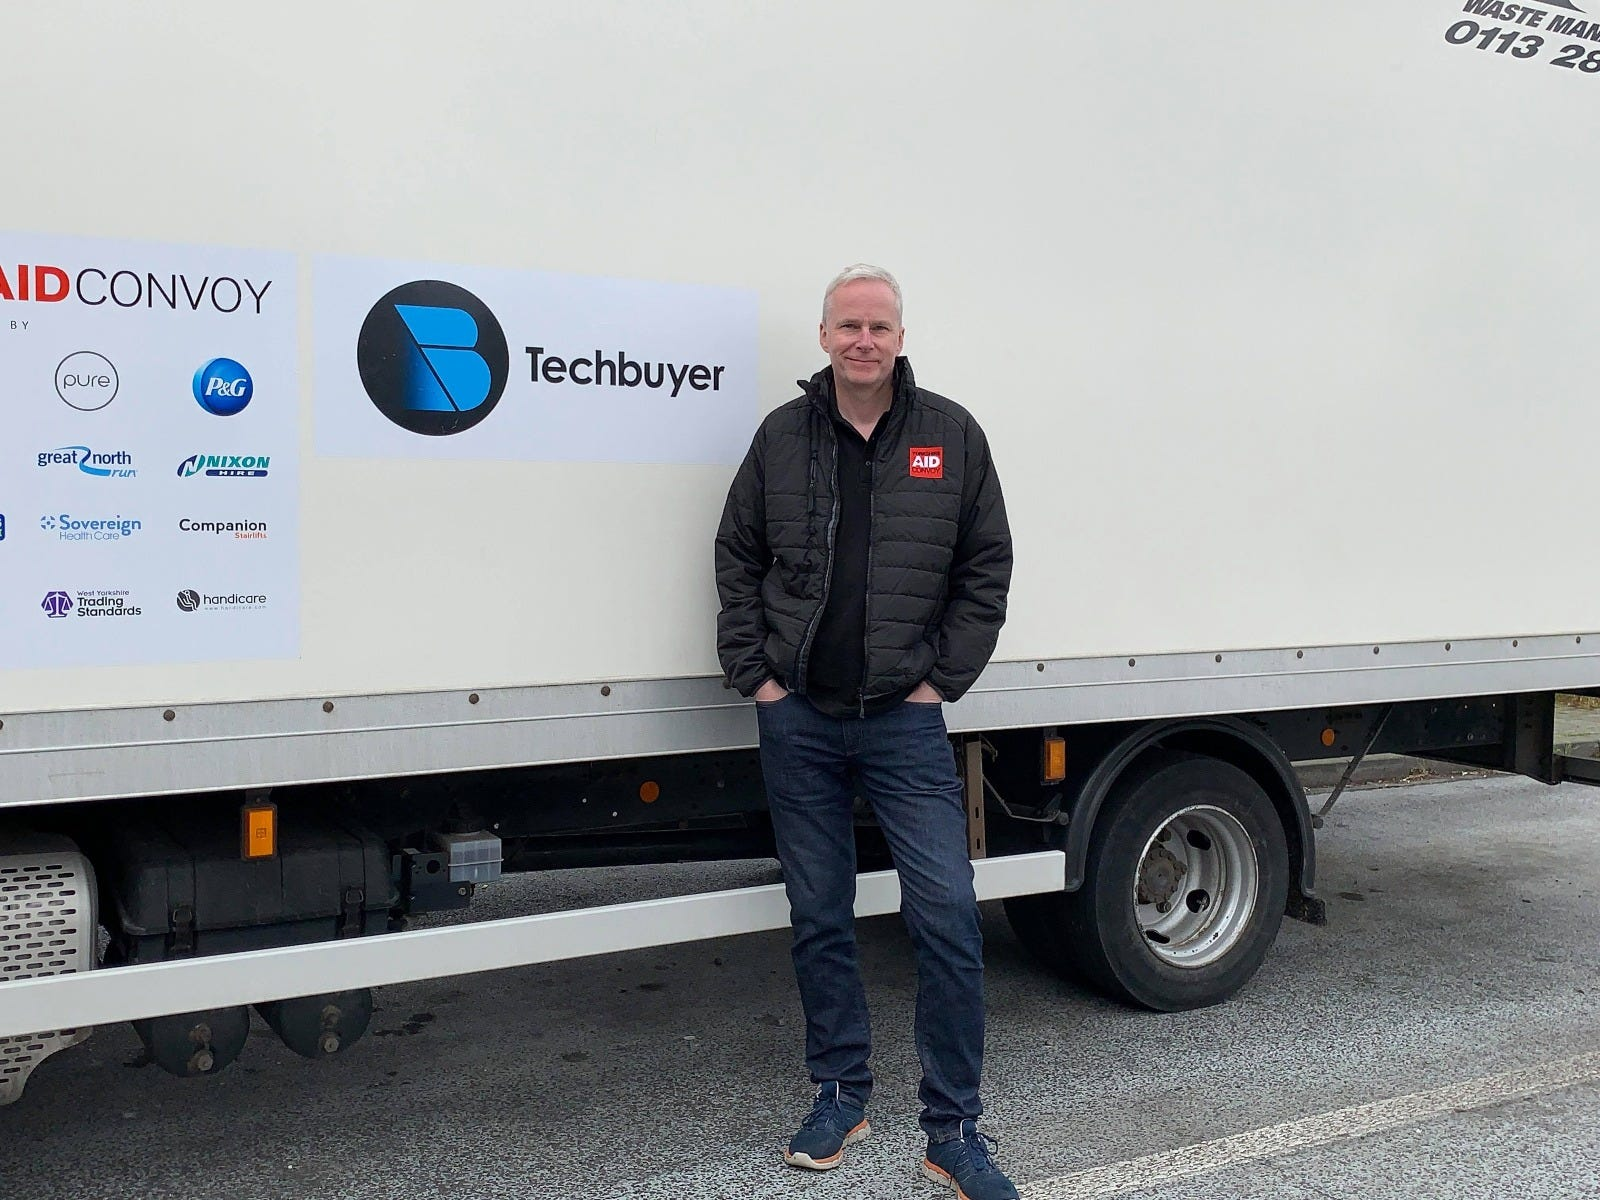 Yorkshire Aid Convoy Techbuyer Donation